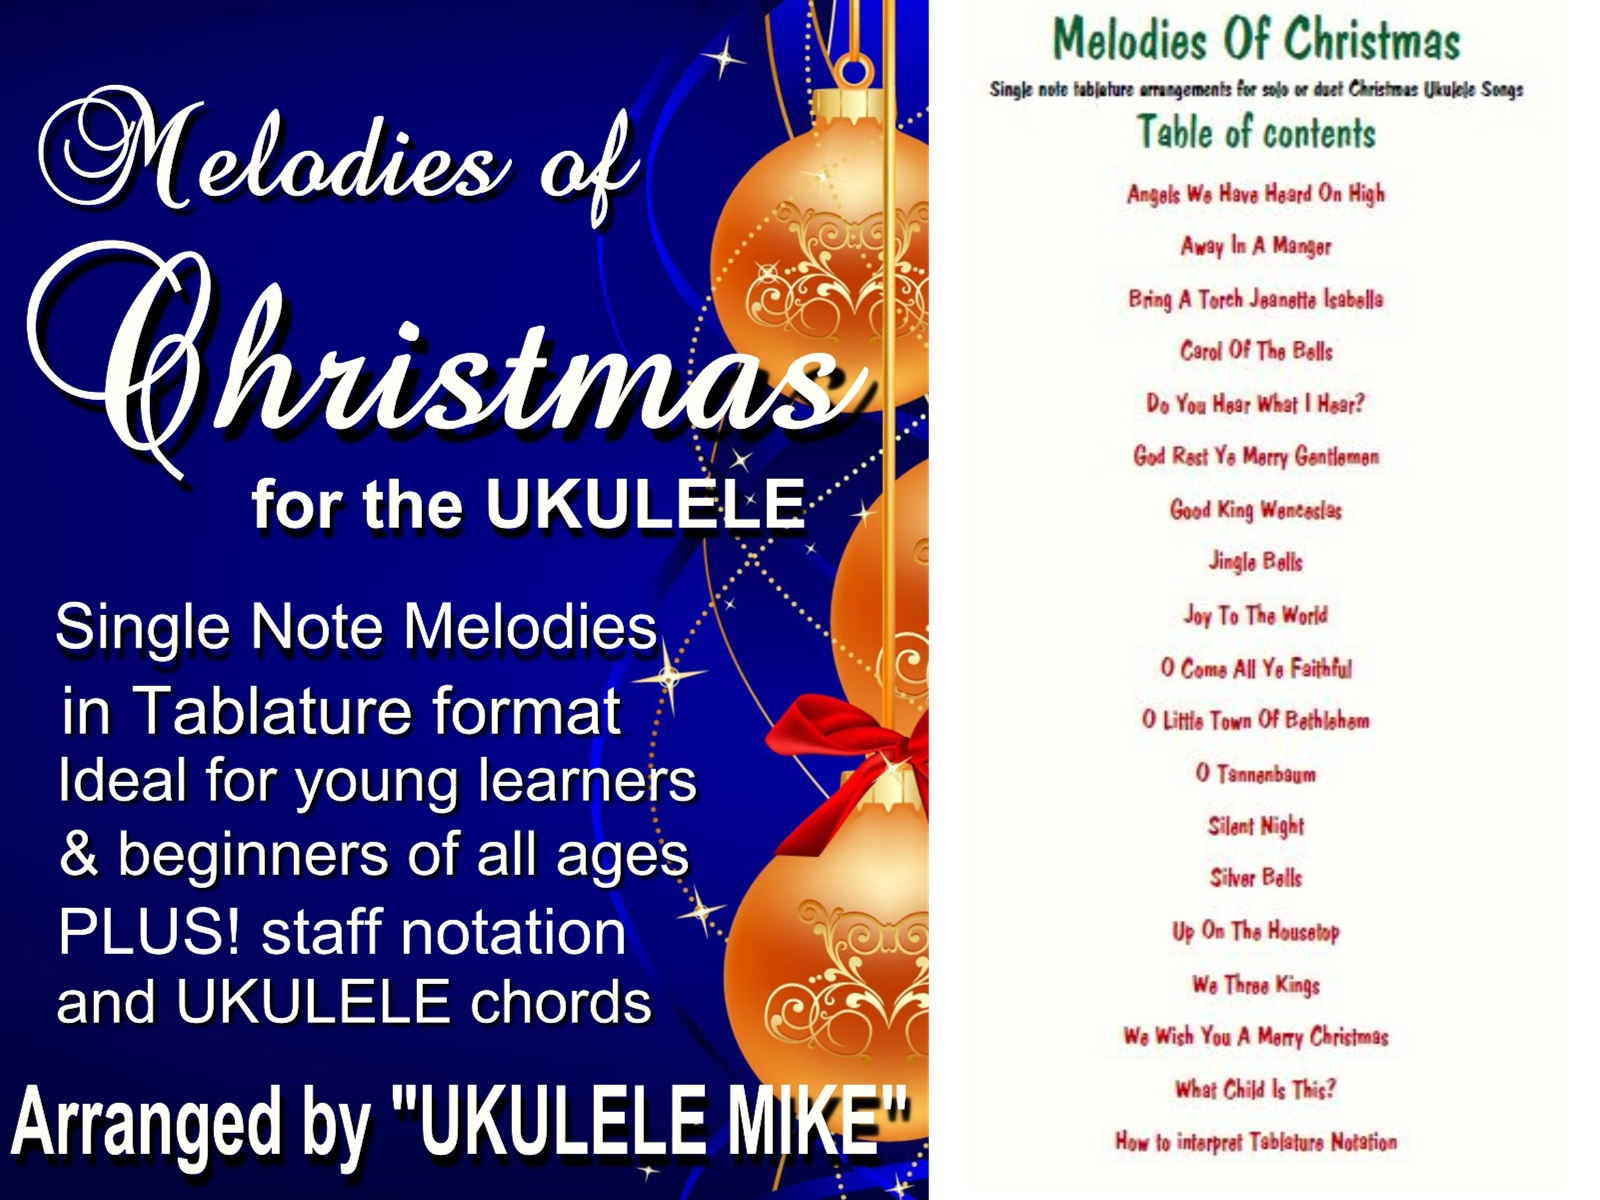 classic standards of christmas now available in single note arrangements melodies of christmas perfect for newbie tablature players melodies of - Classic Christmas Songs List